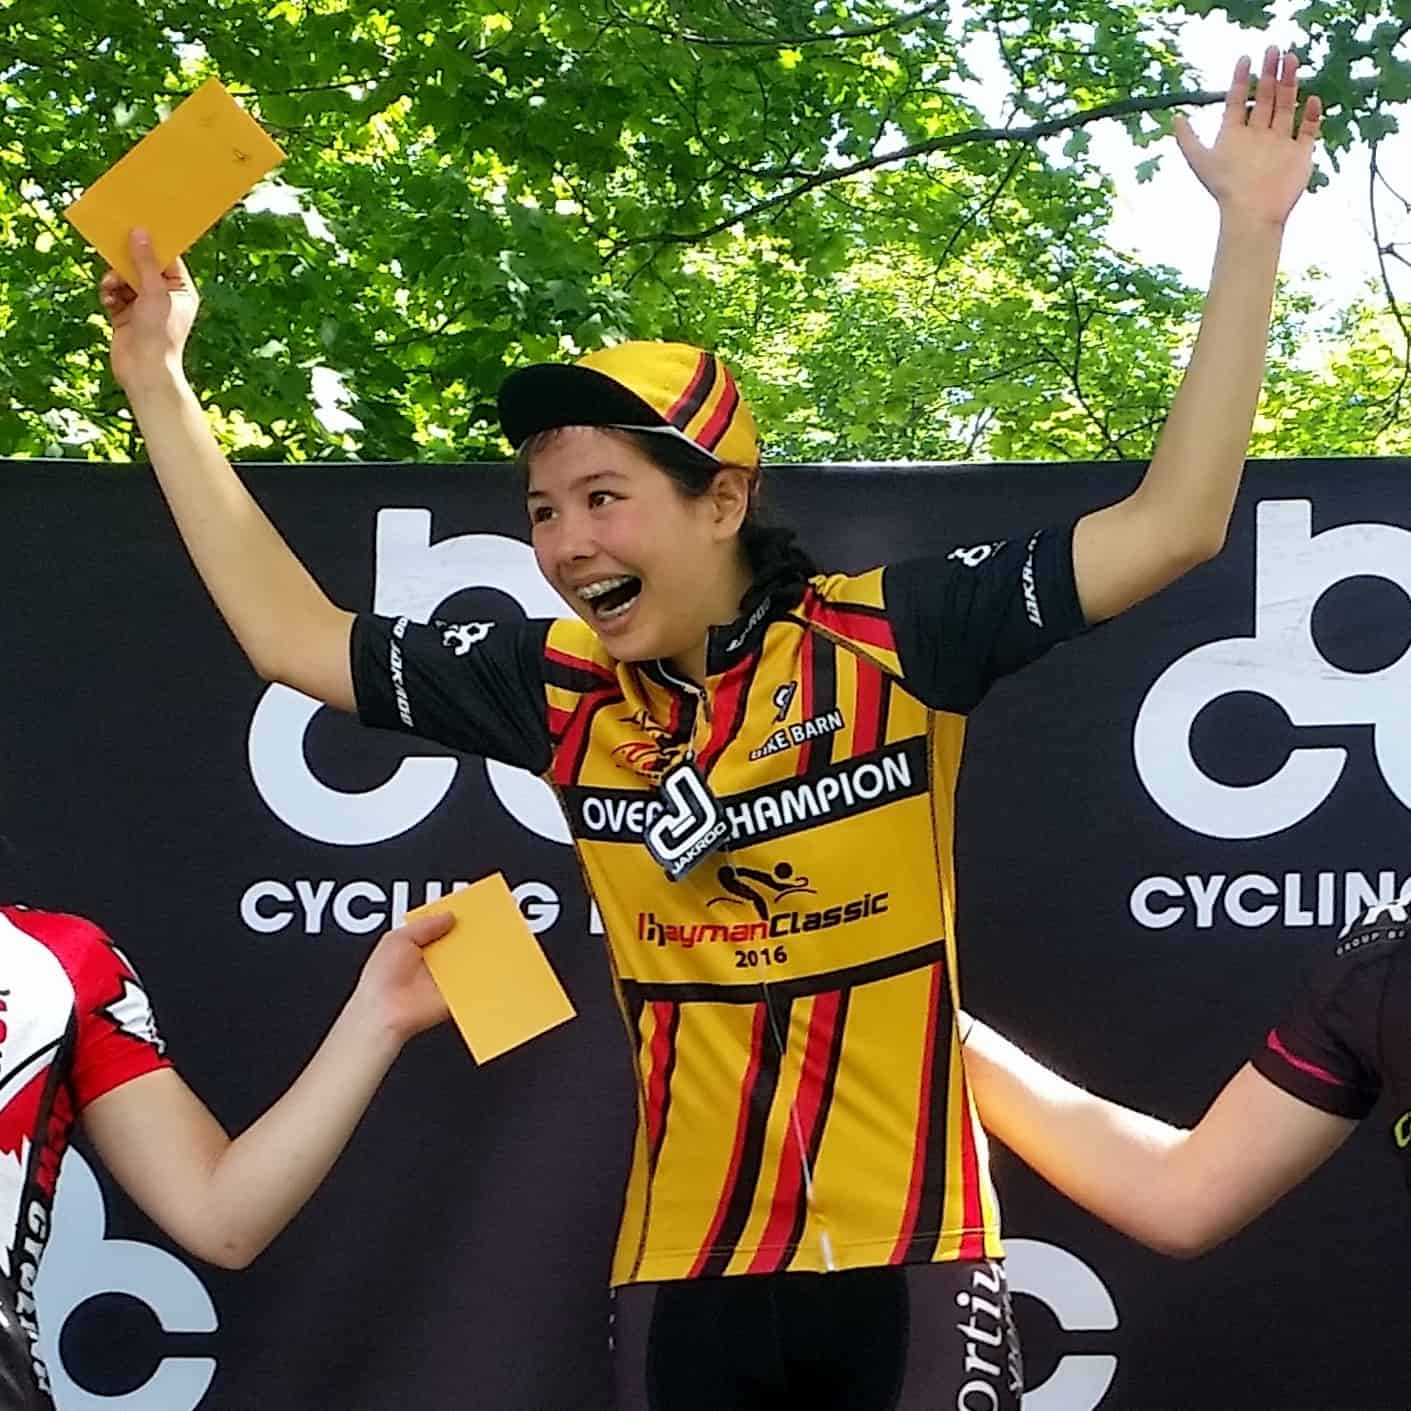 Elizabeth Gin was the Hayman Classic overall Omnium Champion in 2016